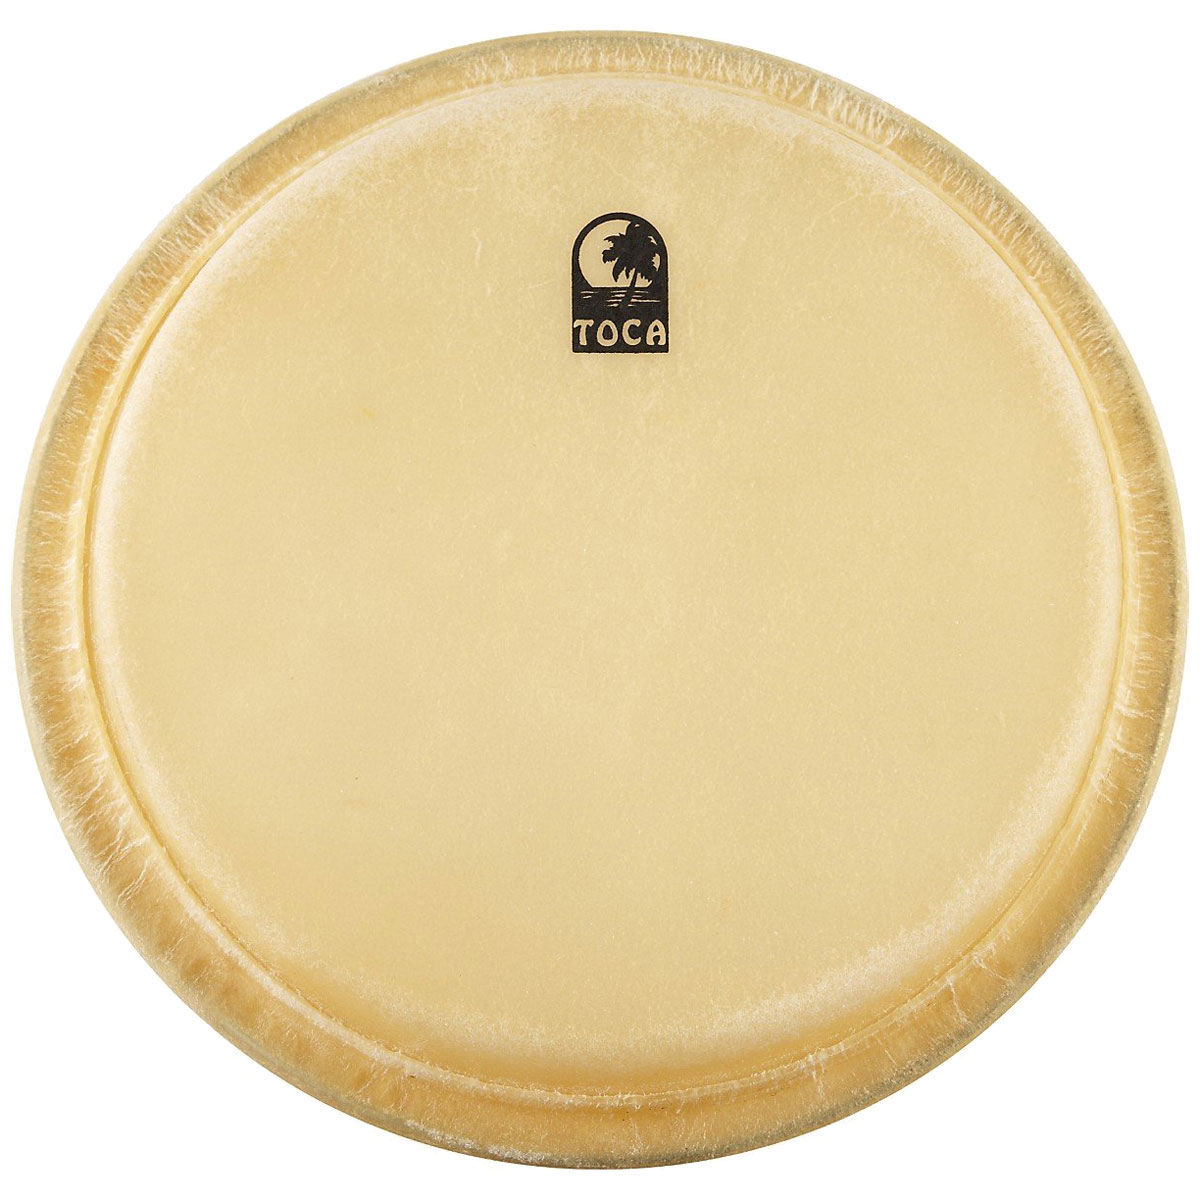 "Toca 11.75"" Elite Pro Wood Rawhide Conga Drum Head"